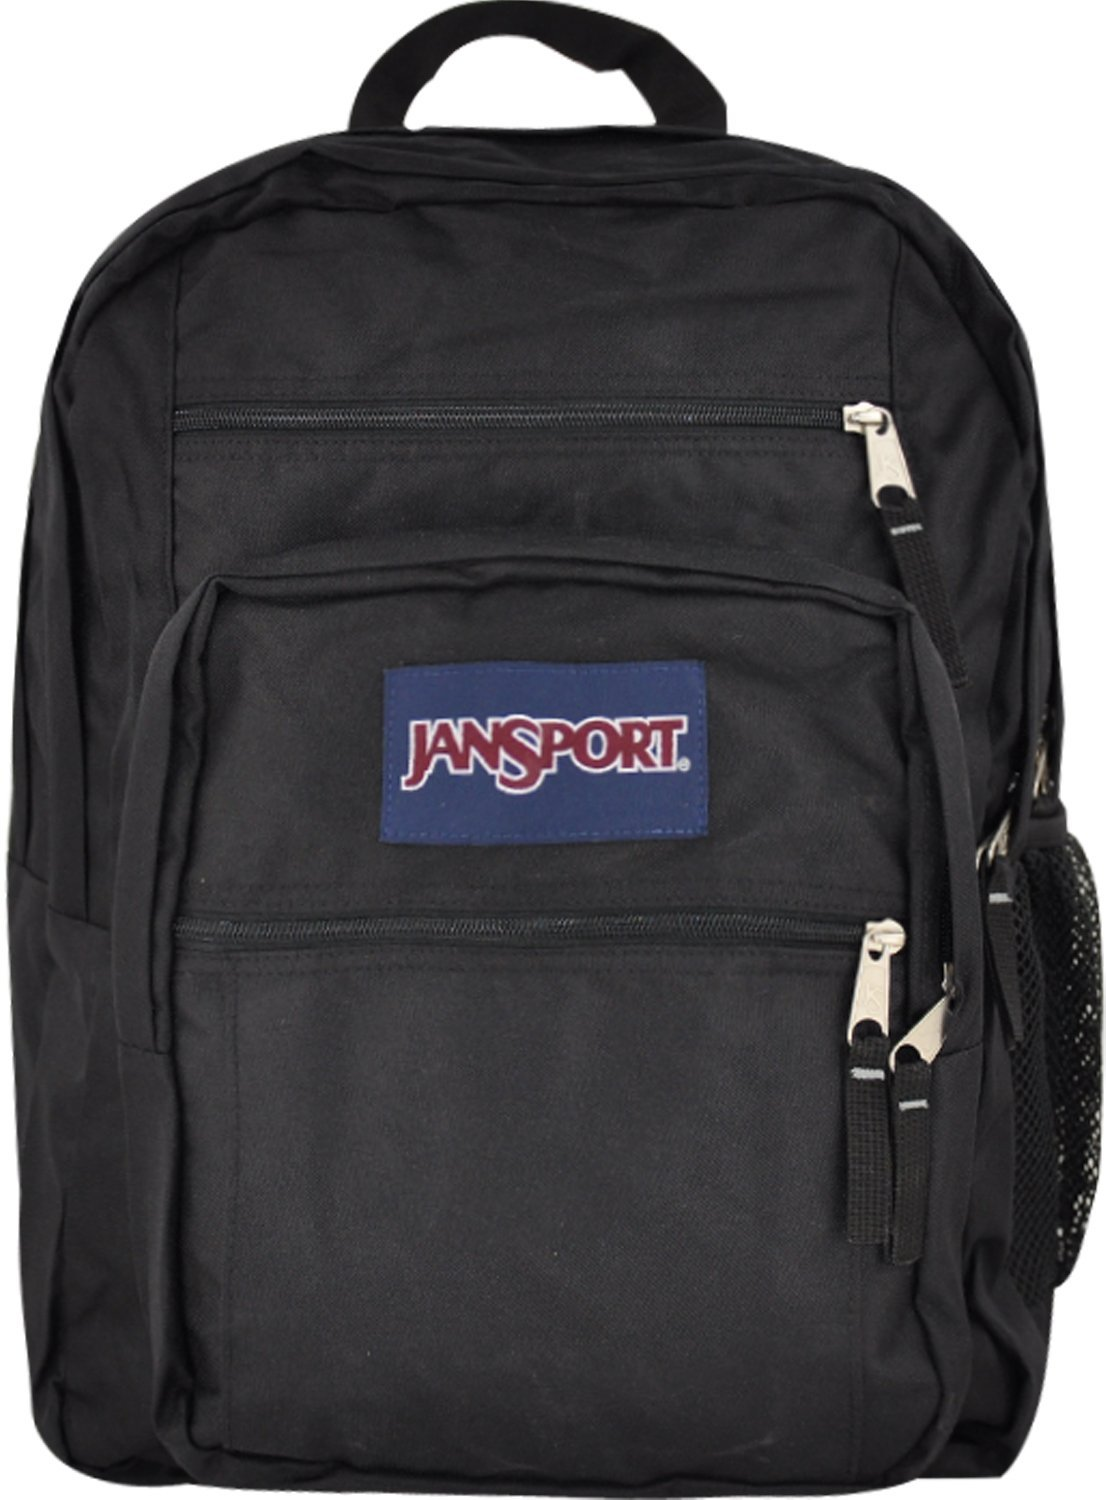 How Much Do Jansport Backpacks Cost n5Mv9pYo